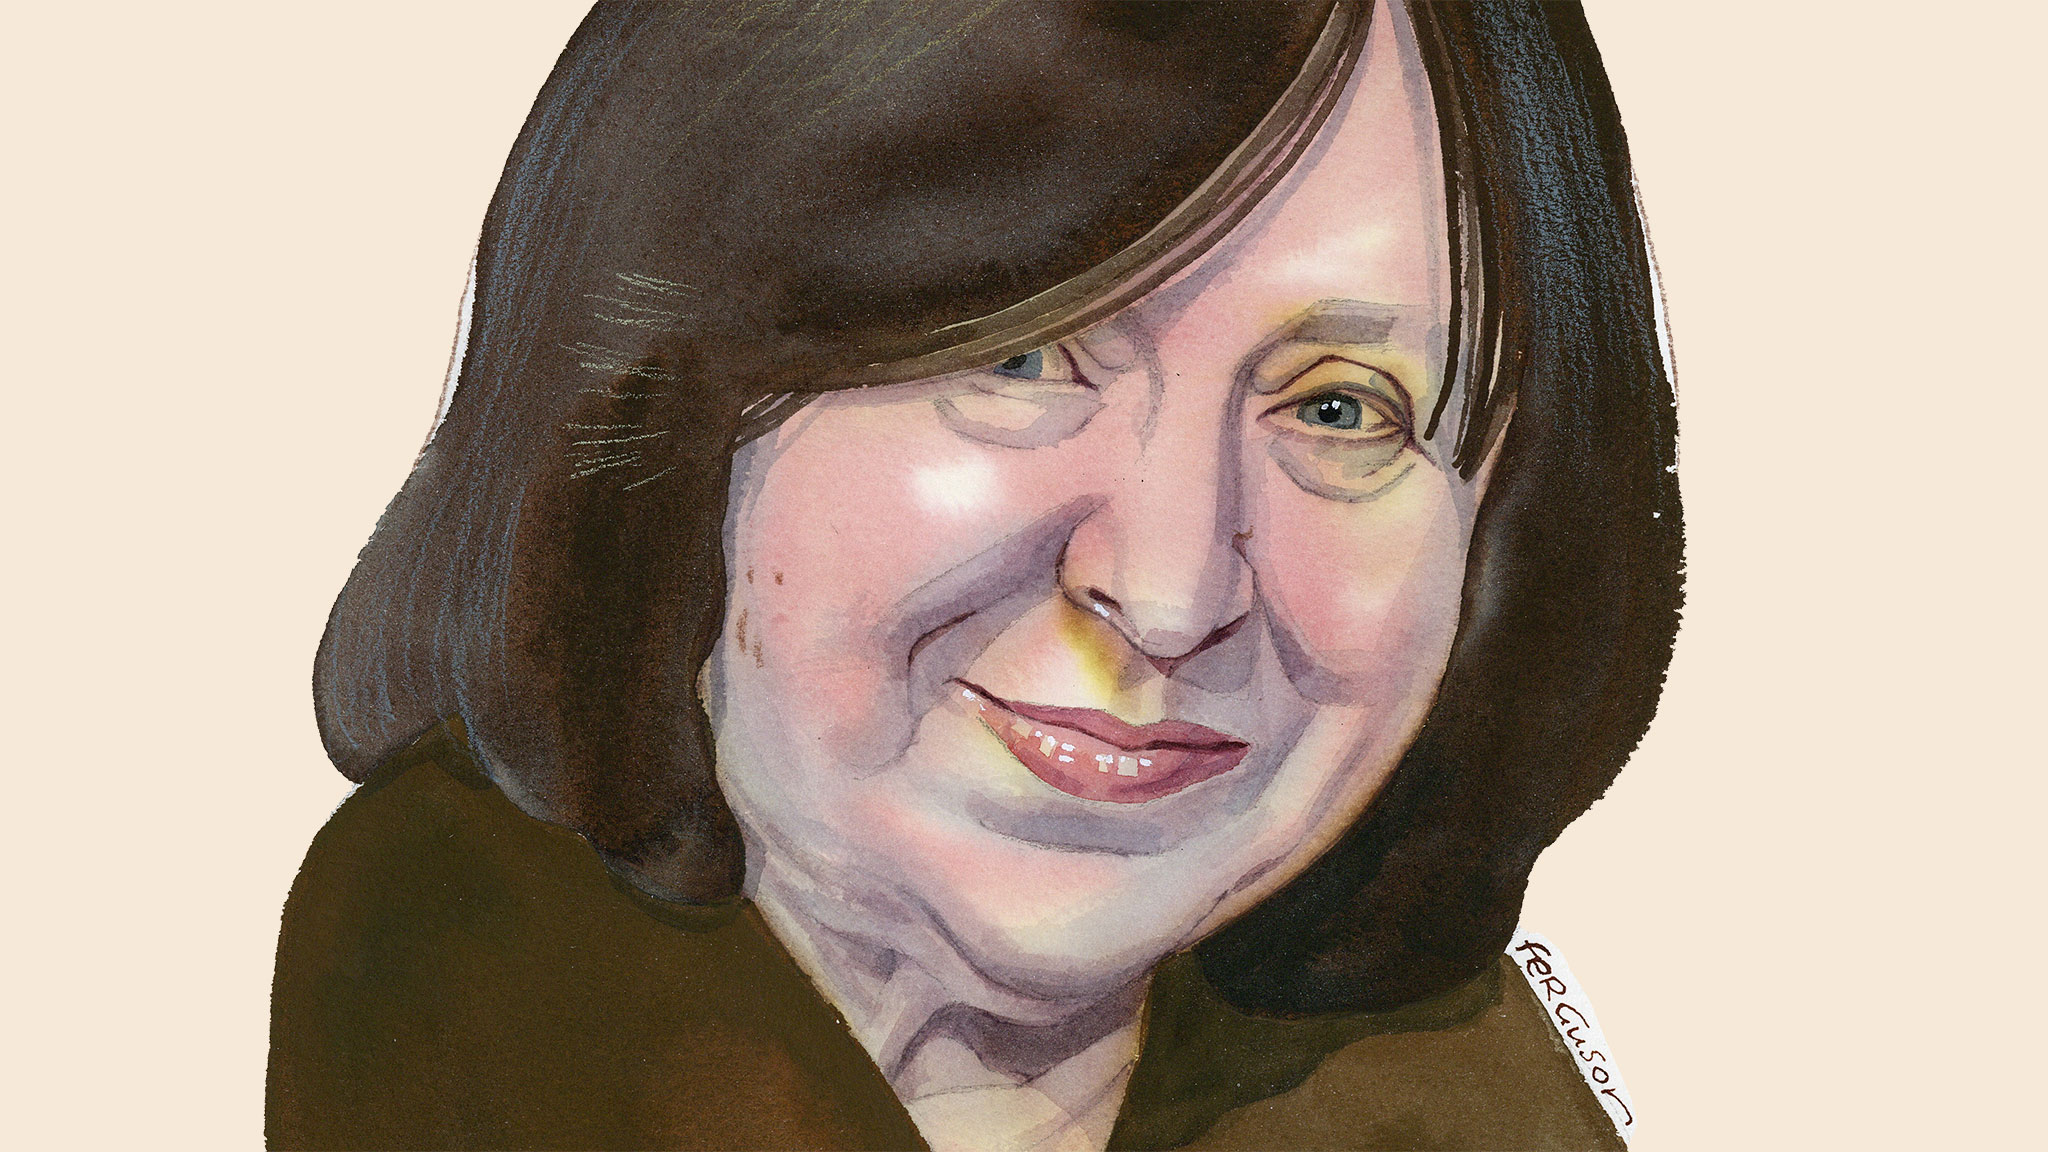 69ecfd26a Nobel laureate Svetlana Alexievich on her fears for Russia's 'collective  Putin' | Financial Times